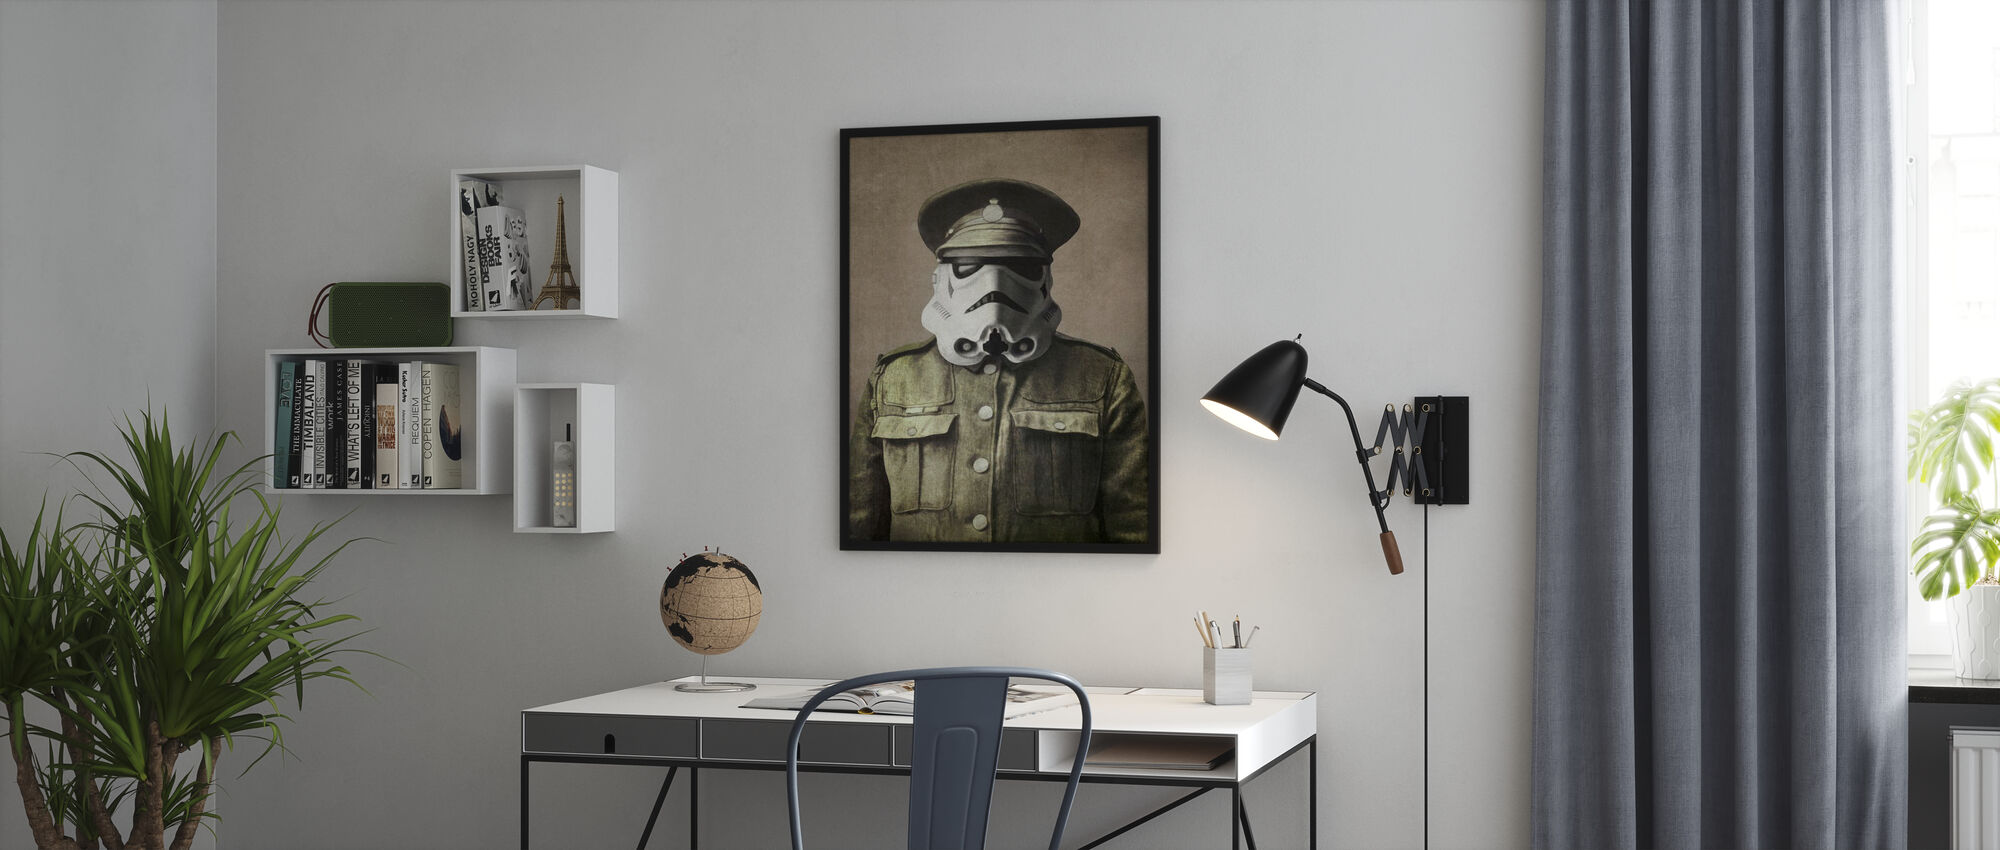 Victorian Wars Sgt. Stormley - Poster - Office